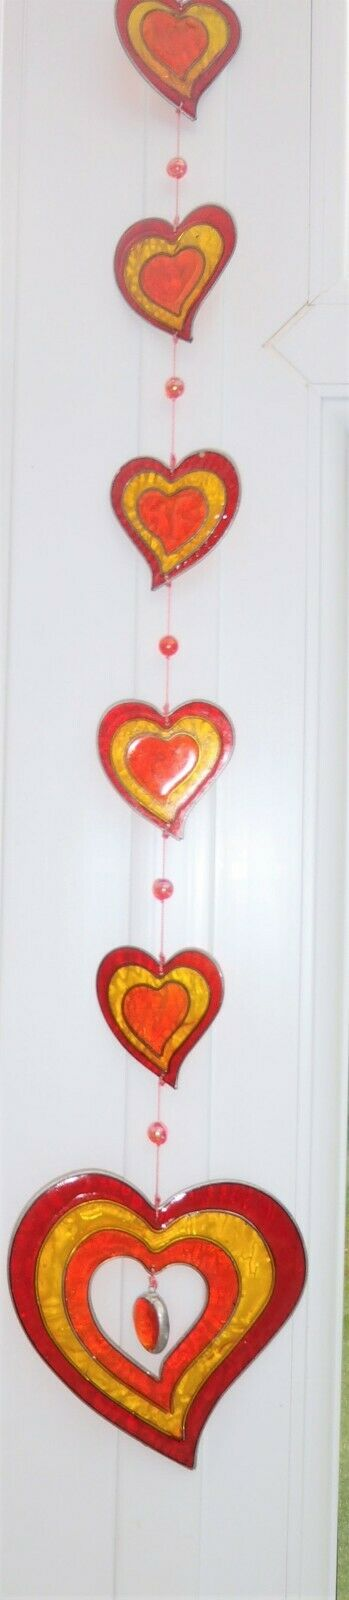 6 HEARTS SUN CATCHER 68 cm STAINED GLASS EFFECT with BEADS with hook